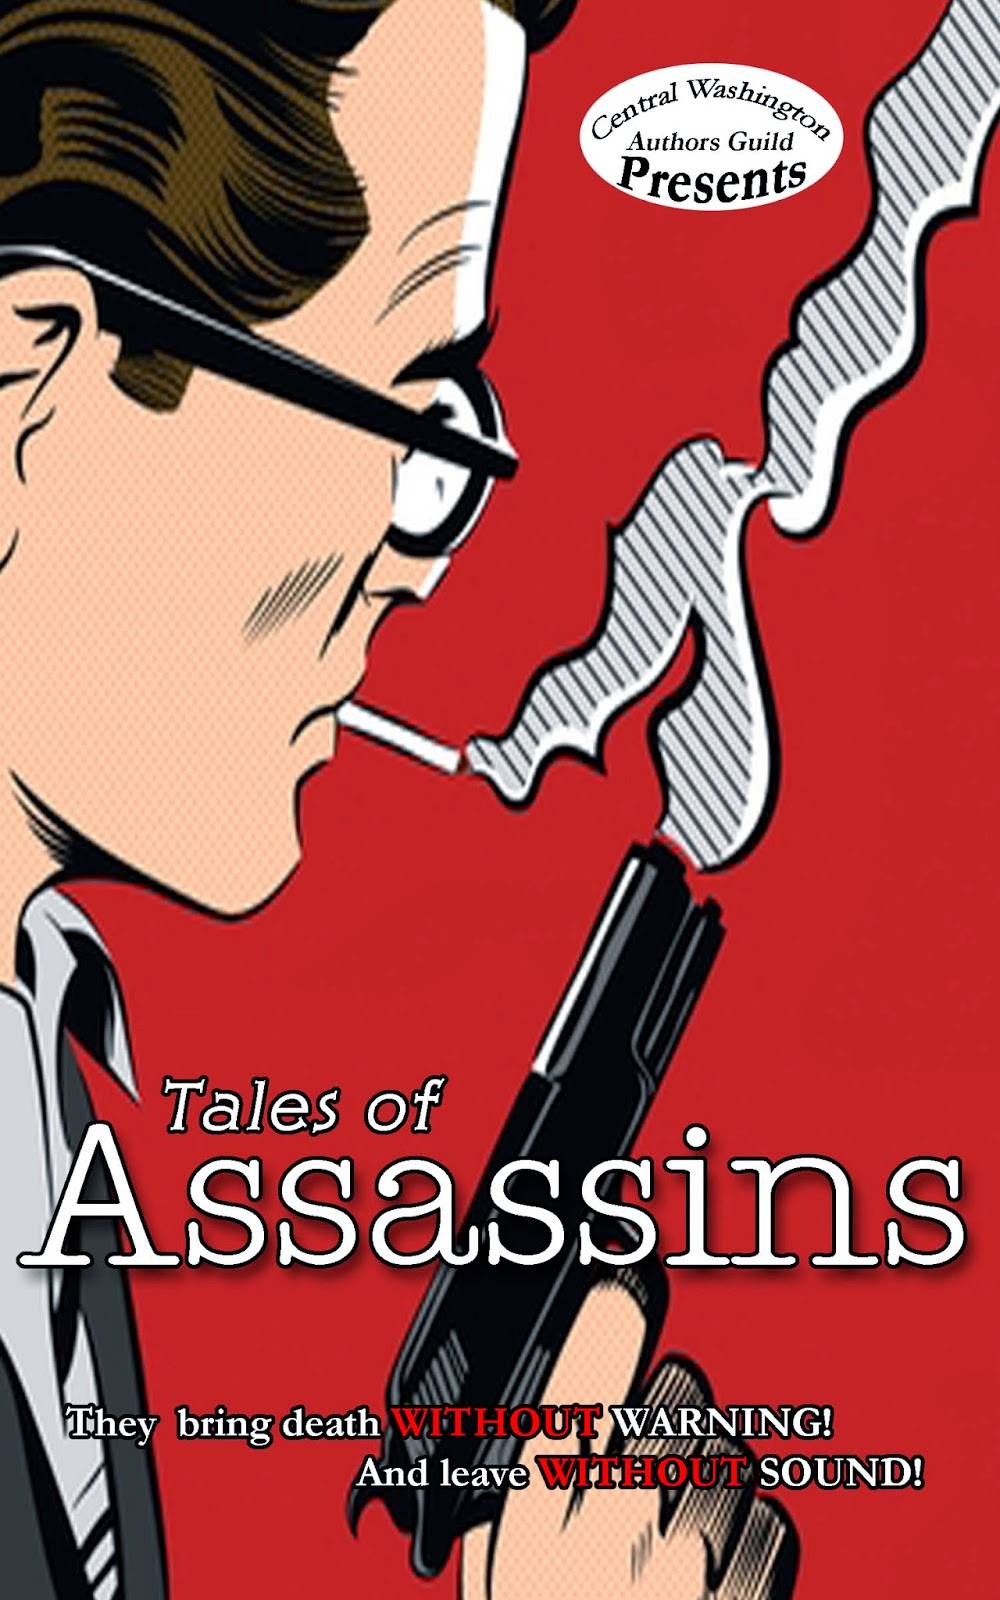 www.amazon.com/Assassins-Central-Washington-Authors-Anthology-ebook/dp/B00P3J5AGM/